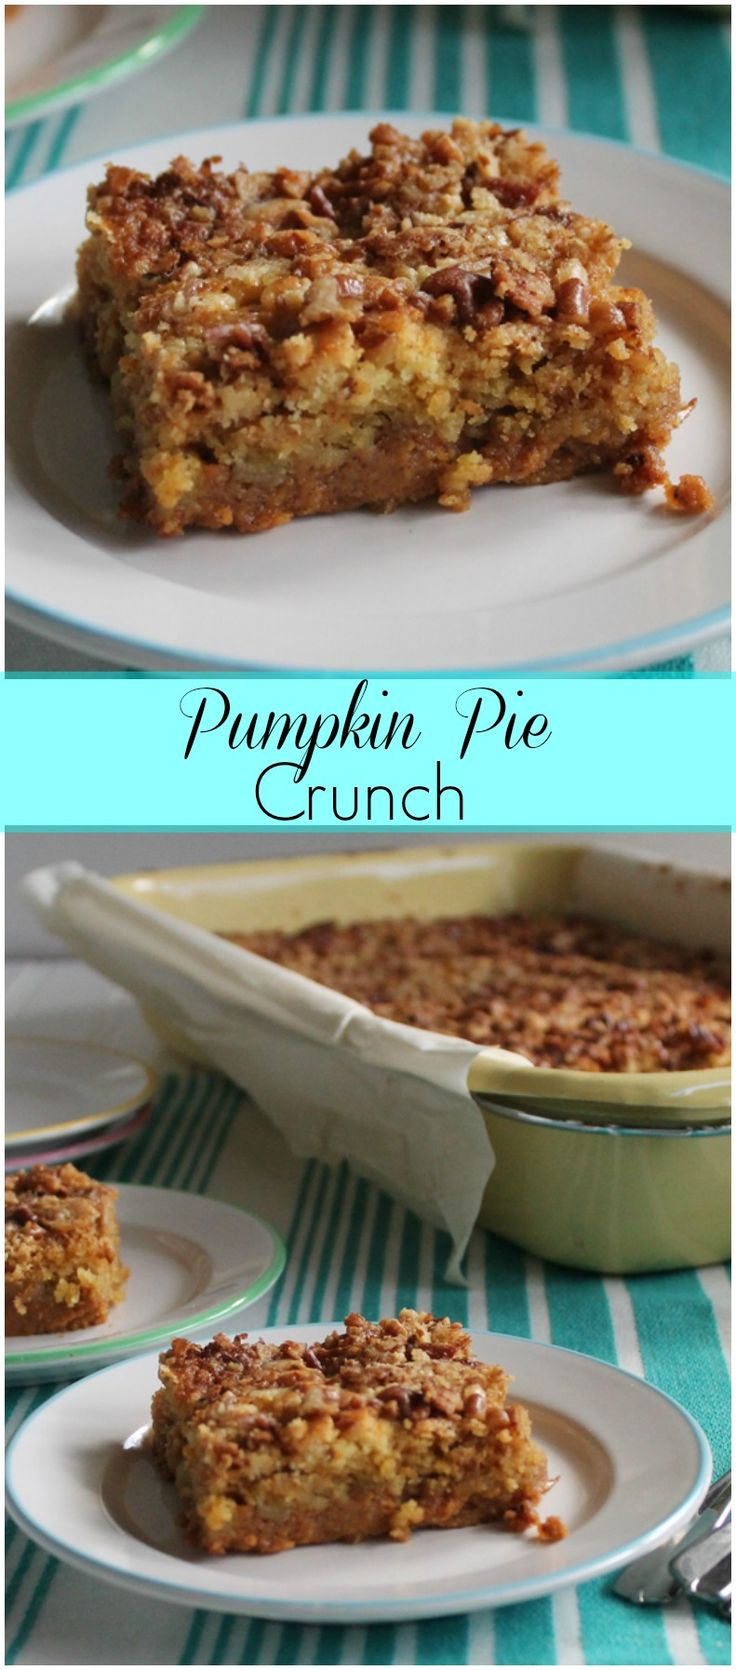 Pumpkin Pie Crunch-a perfect balance between pumpkin and my favorite sweet potato soufflé topping! (Potato Butter Pie)